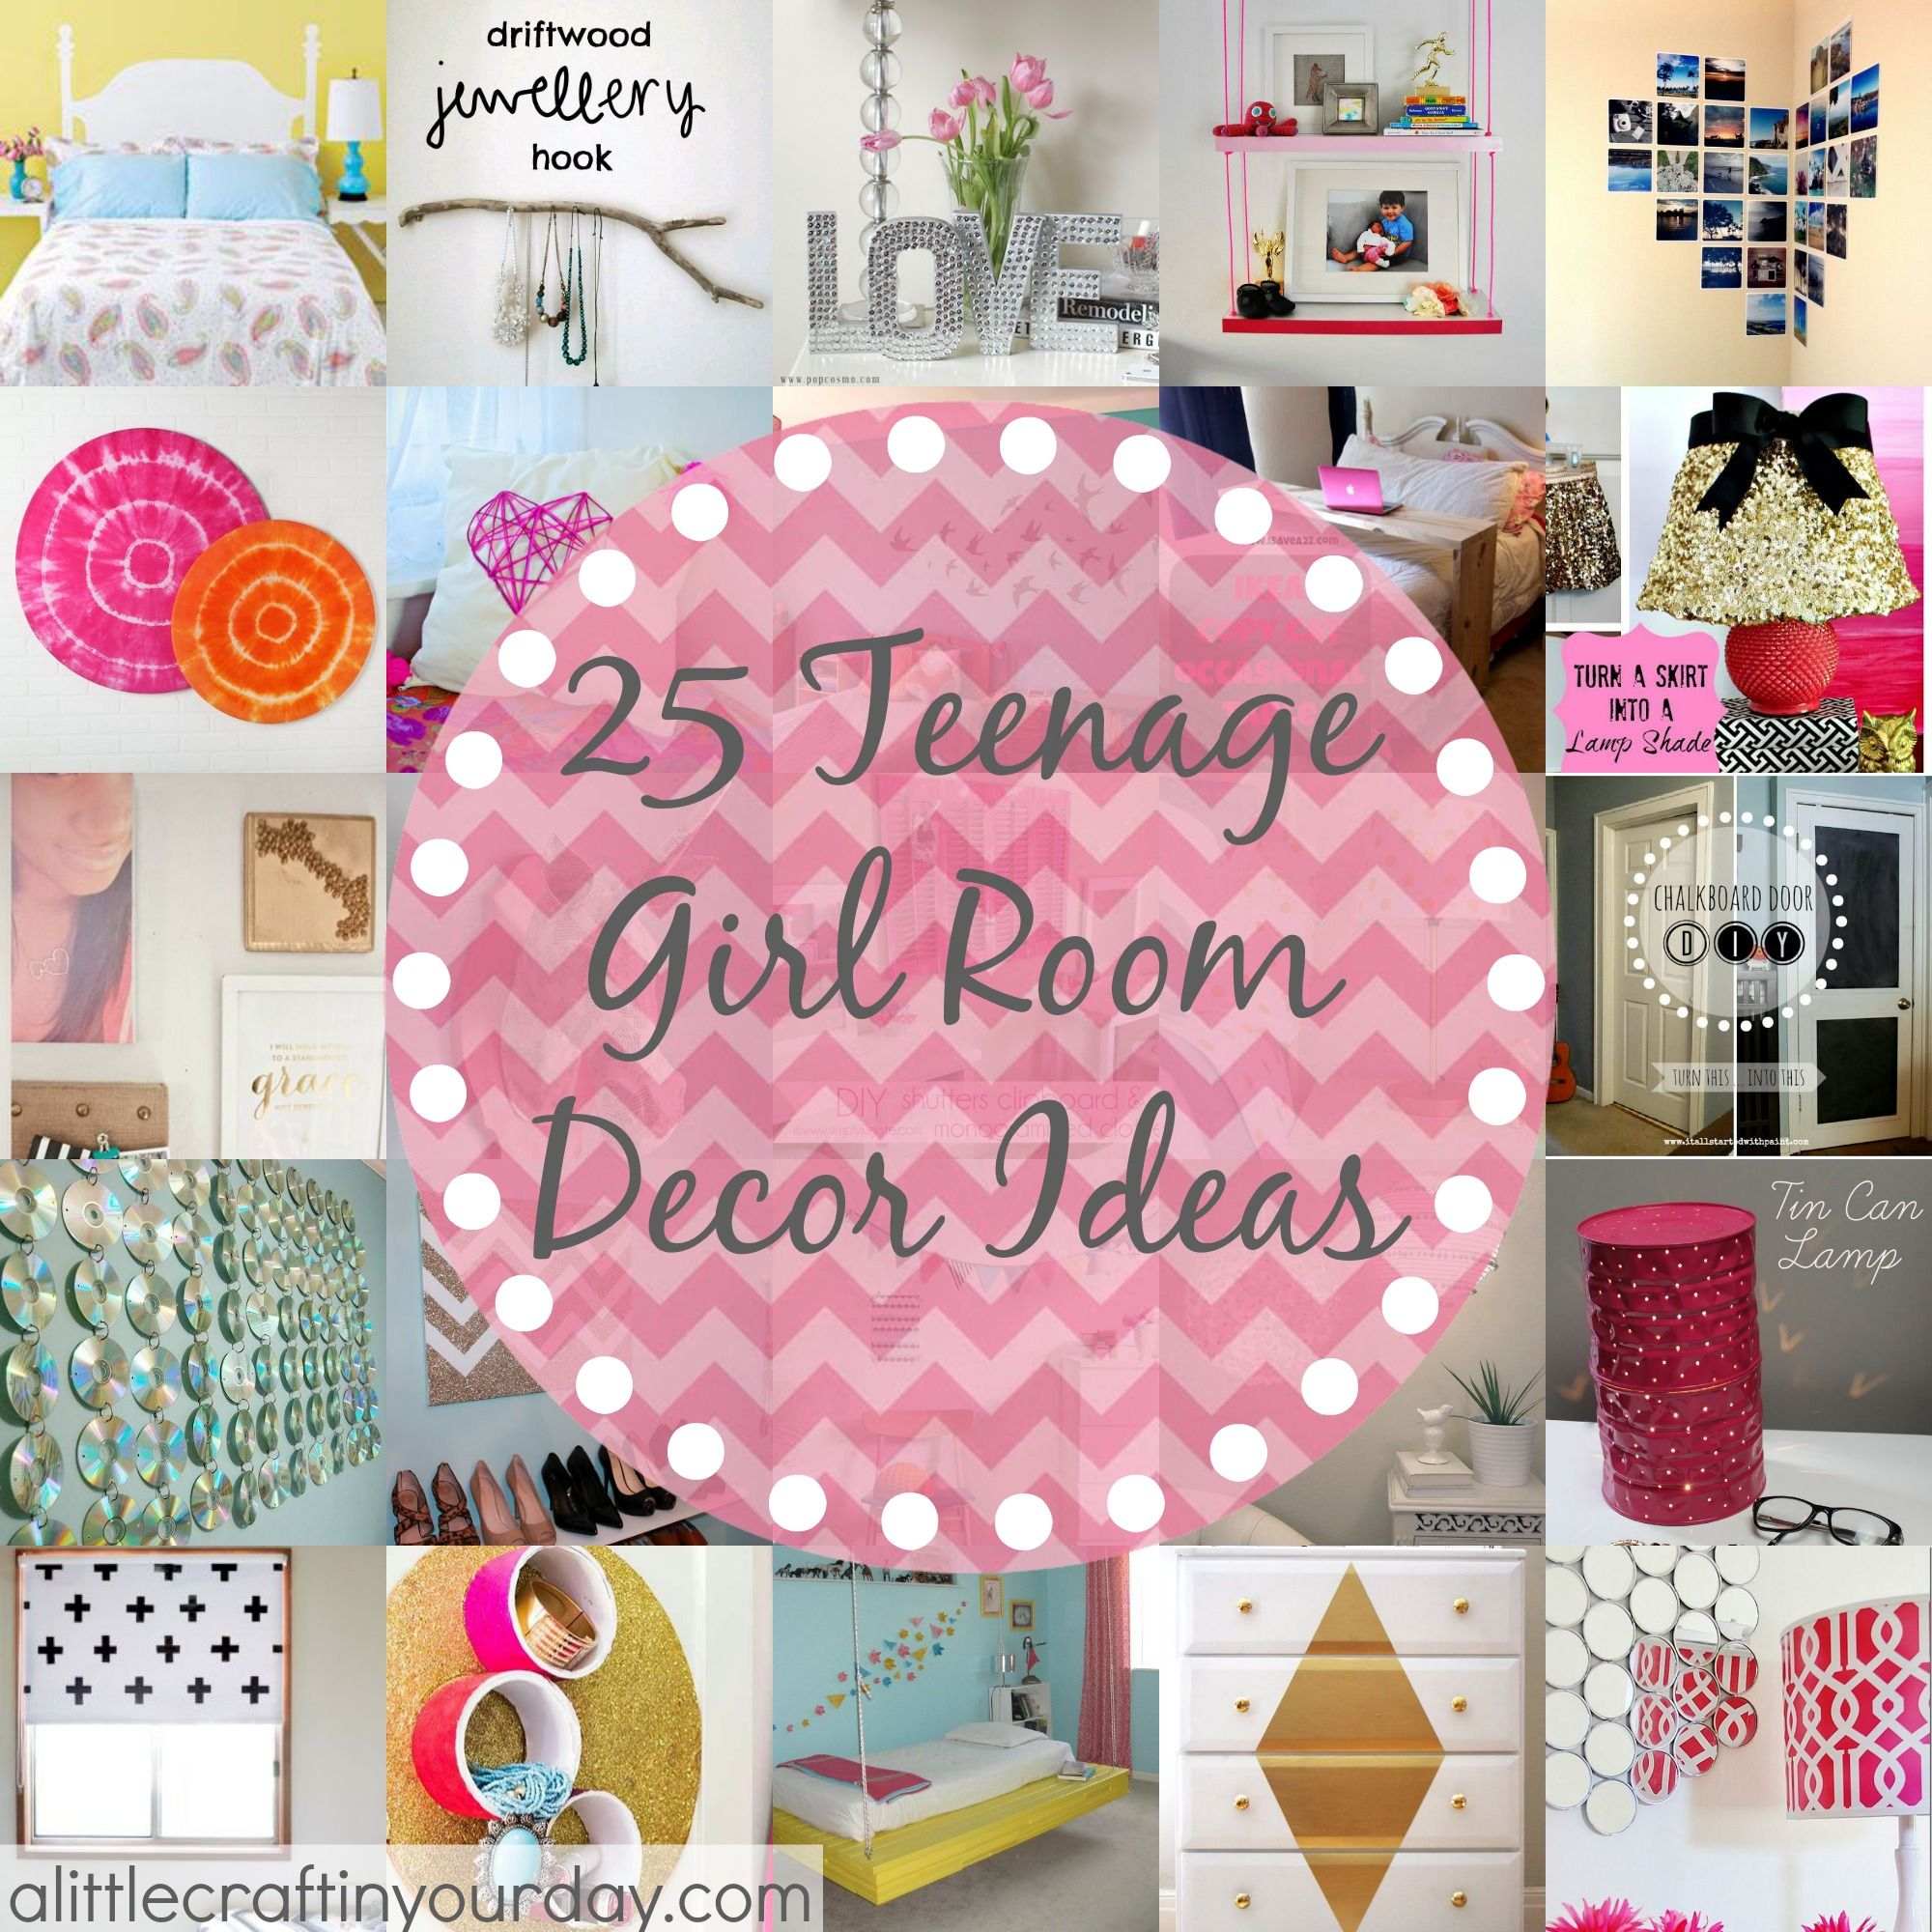 Cute bedroom ideas for teenage girls with small rooms - 25 More Teenage Girl Room Decor Ideas